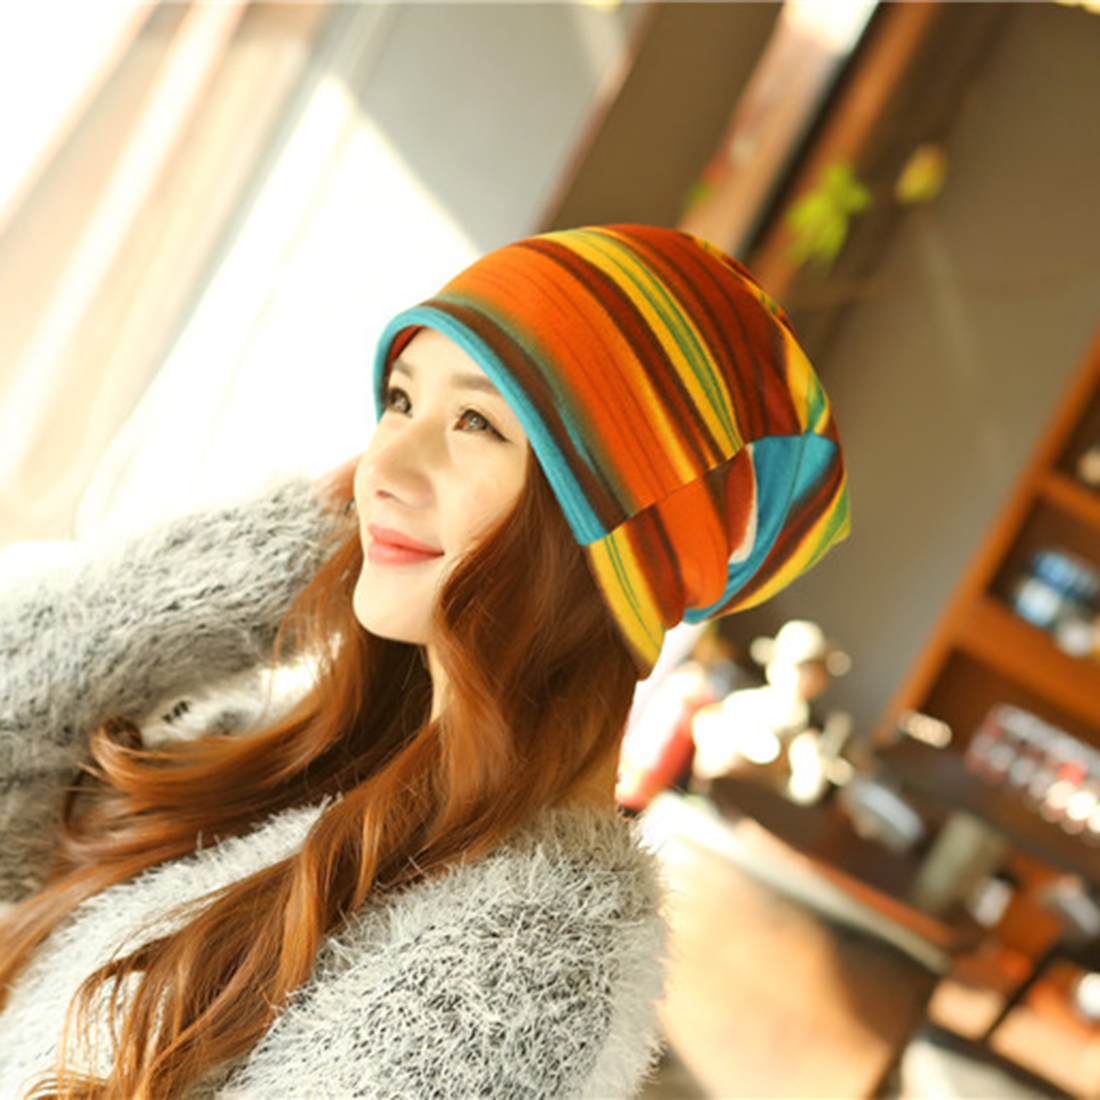 ac6b85a5a3324 ... Women s Hot Fashion Turban Autumn Winter Warm Headdress Caps Hat  Colorful Striped Scarf Work Out Beanies ...